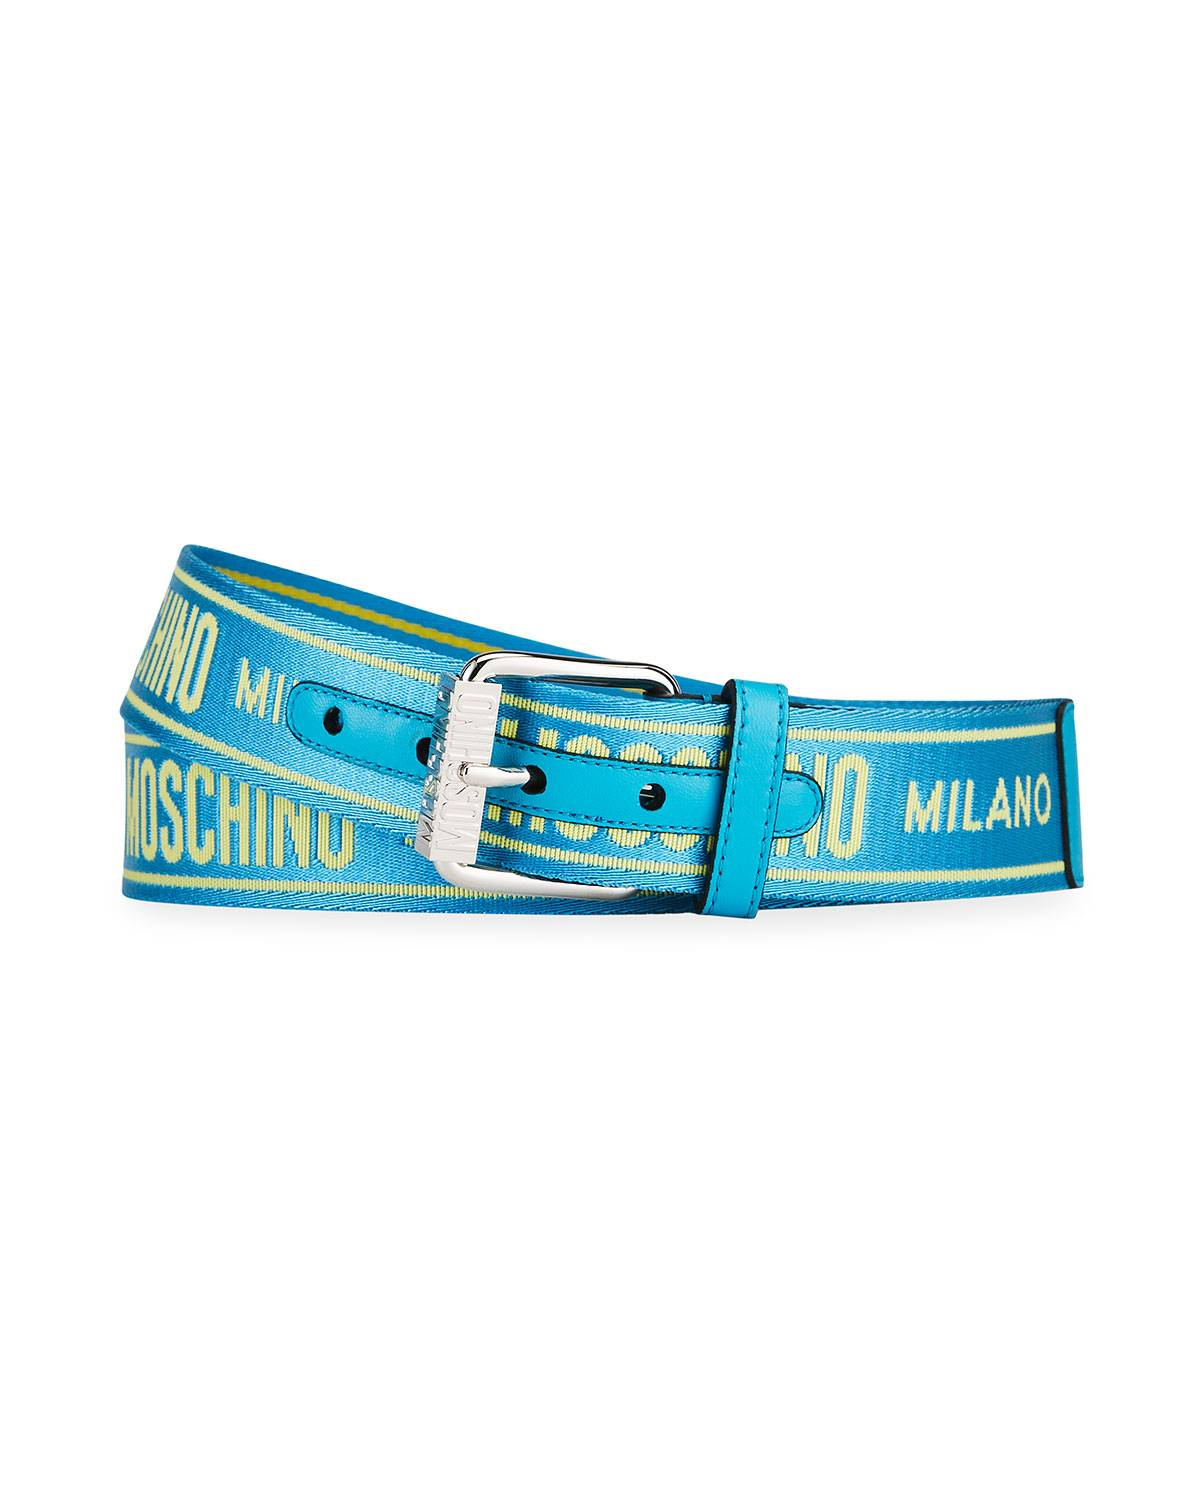 Moschino Men's Logo Webbing Belt - Size: 38in / 95cm